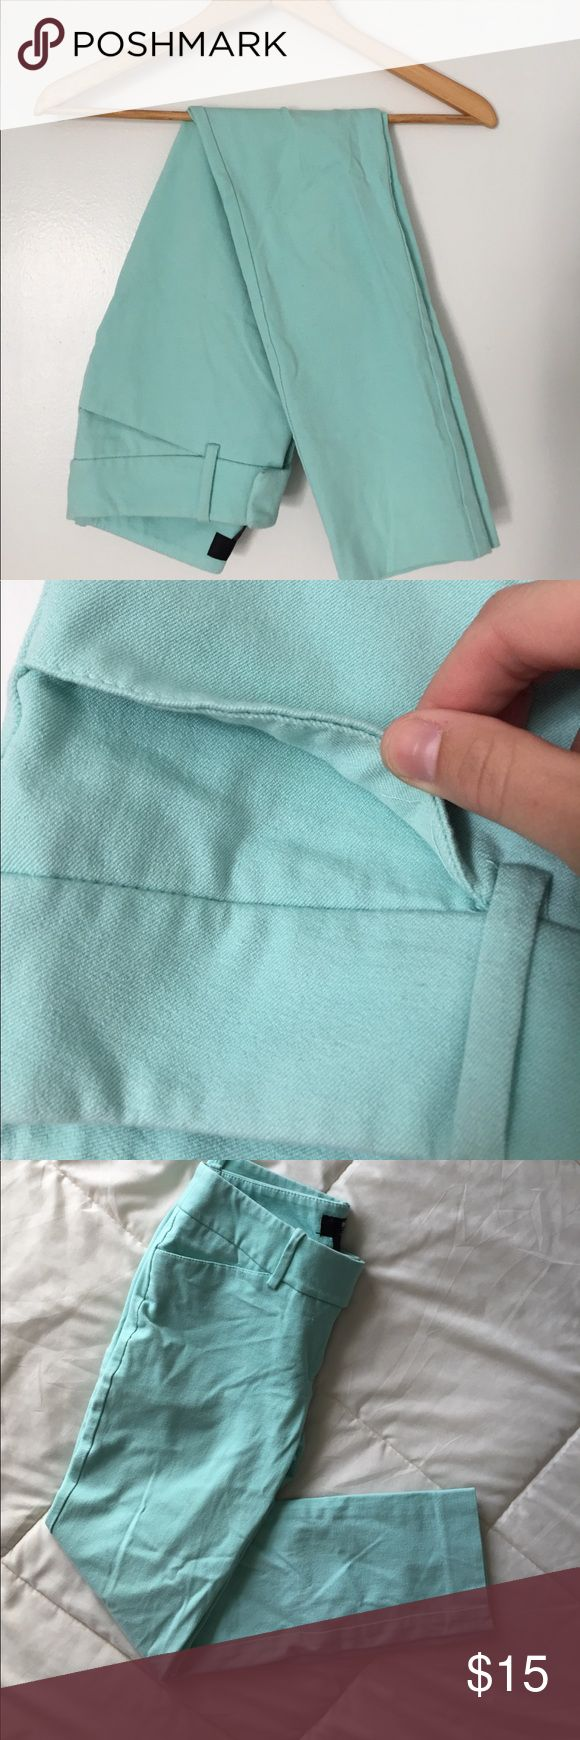 Mint green trouser pants These are the best work pants. Skinny and fall right at the ankle. Perfect with flats and a top. Only wore a handful of times. In great condition. Will probably just need some ironing 😊 Mossimo Supply Co Pants Trousers